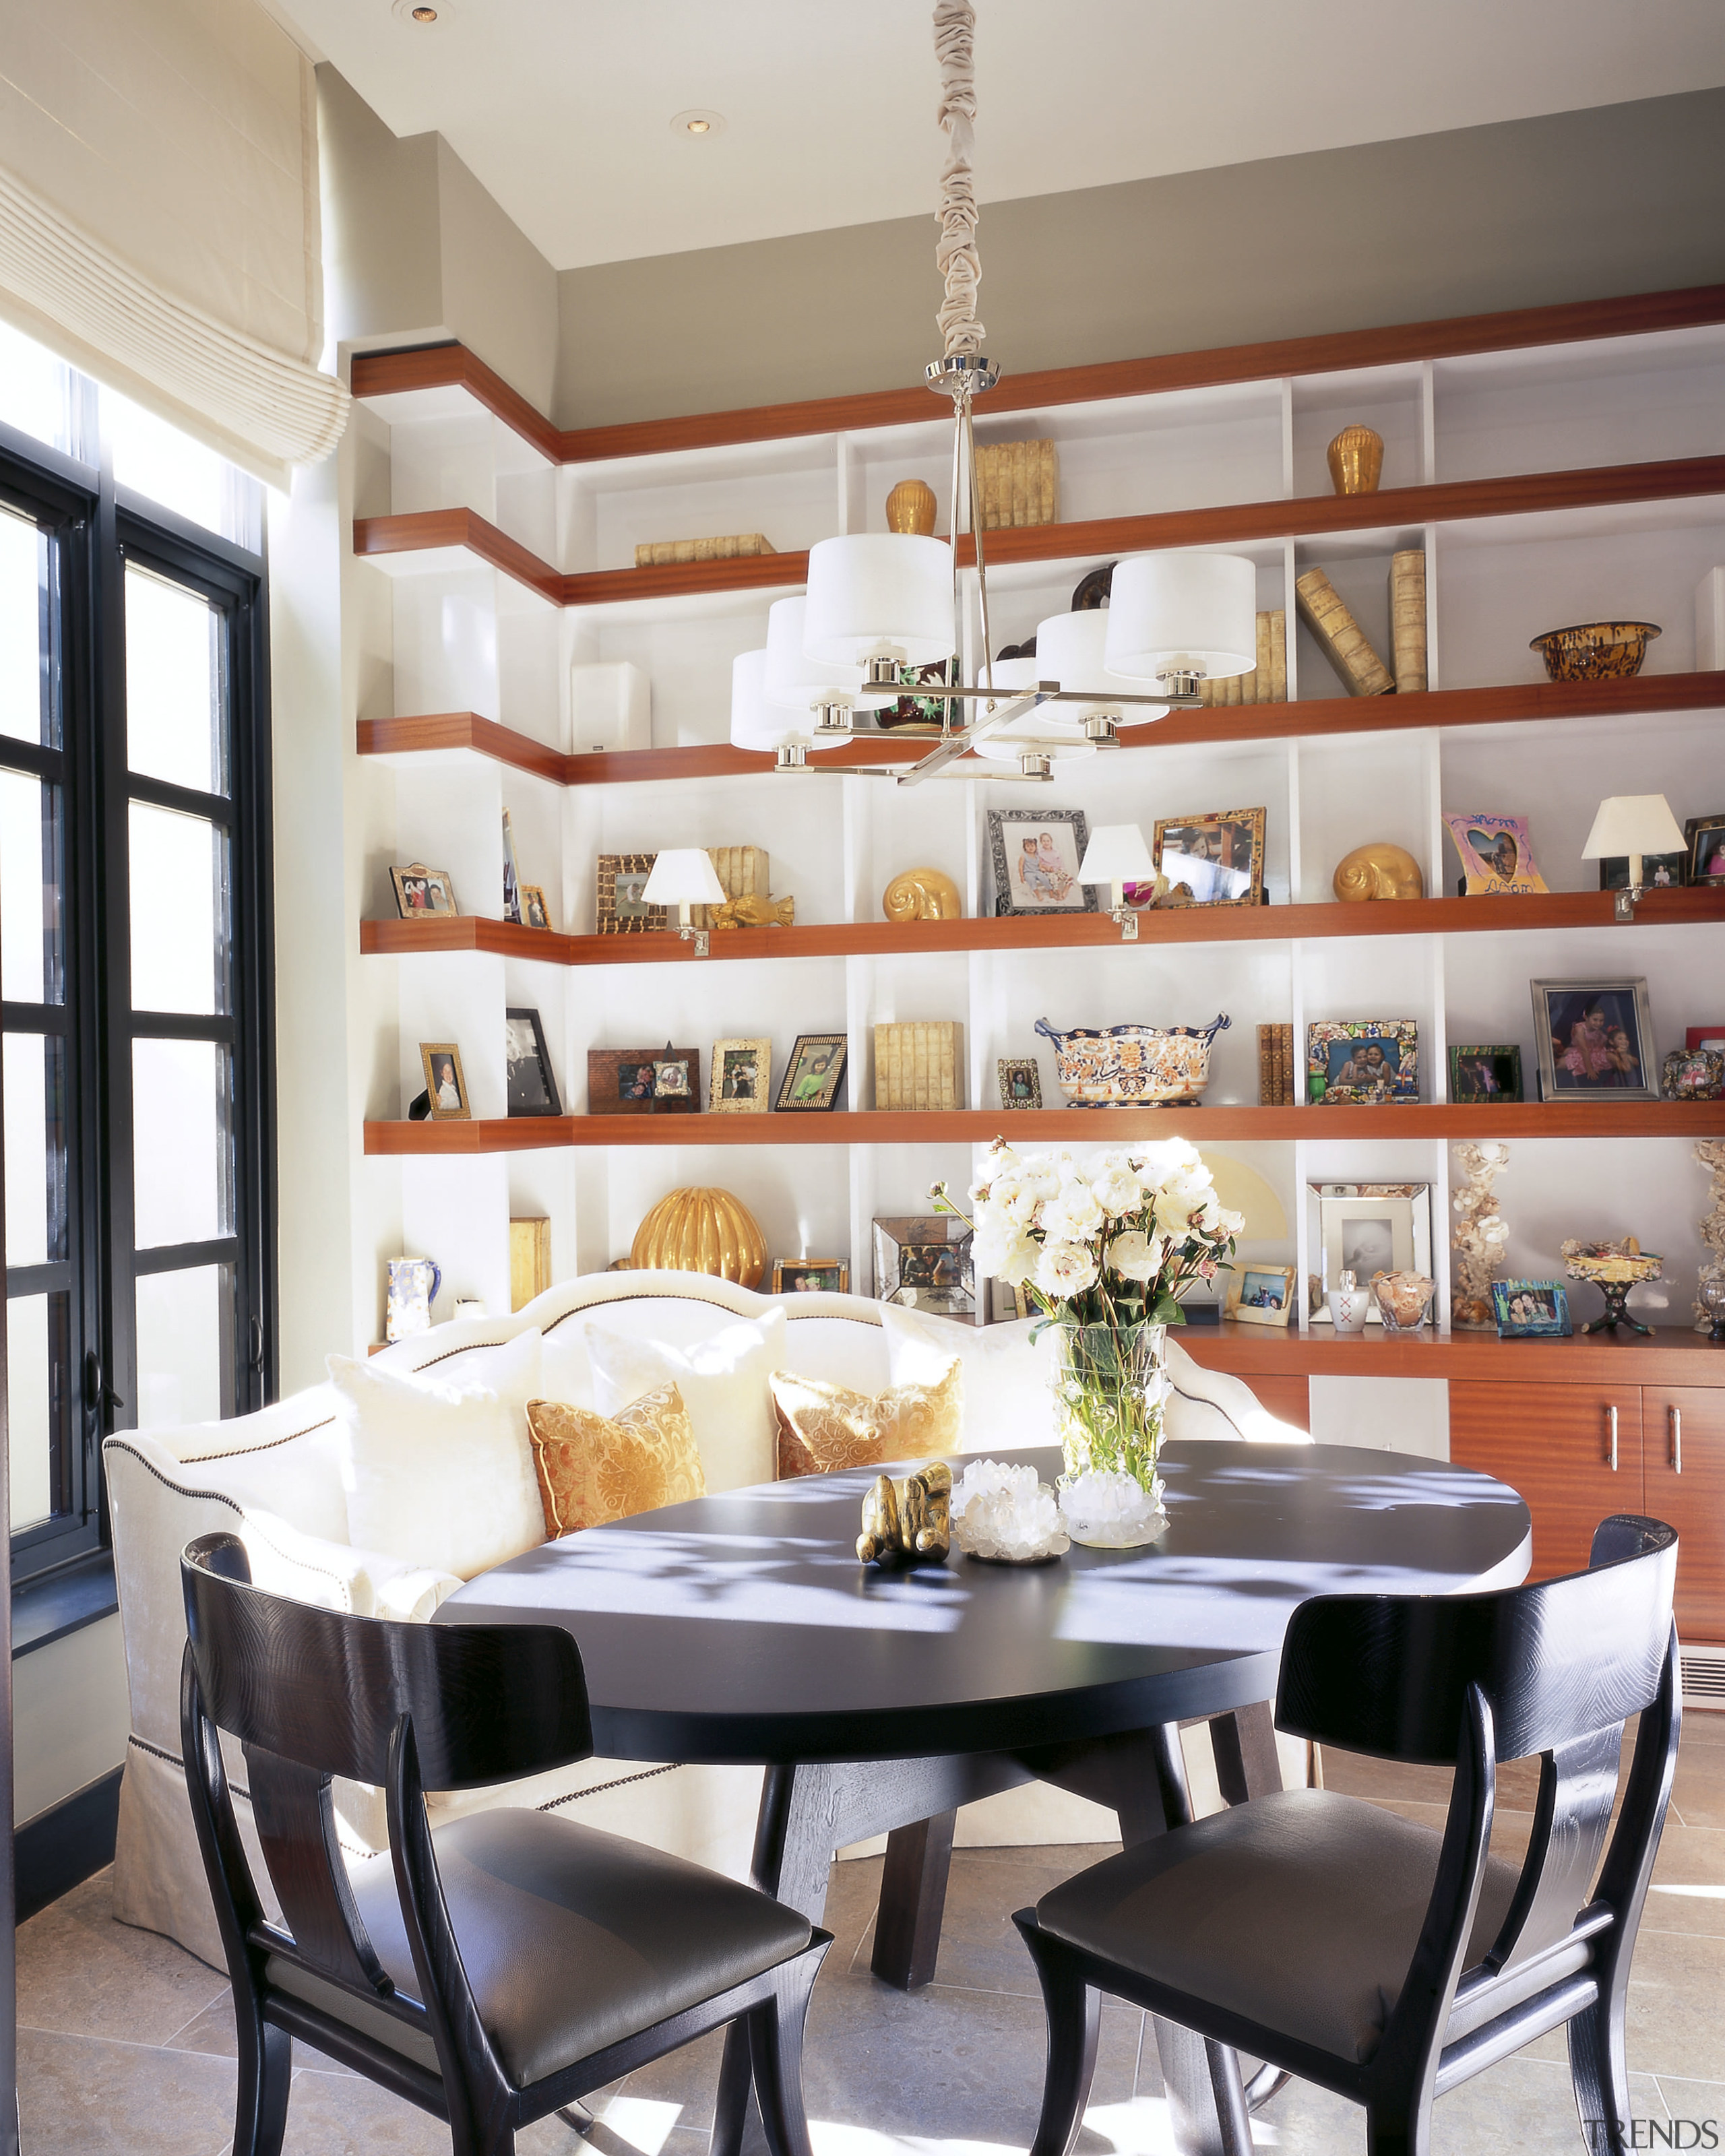 View of the breakfast area which features a dining room, furniture, interior design, room, table, gray